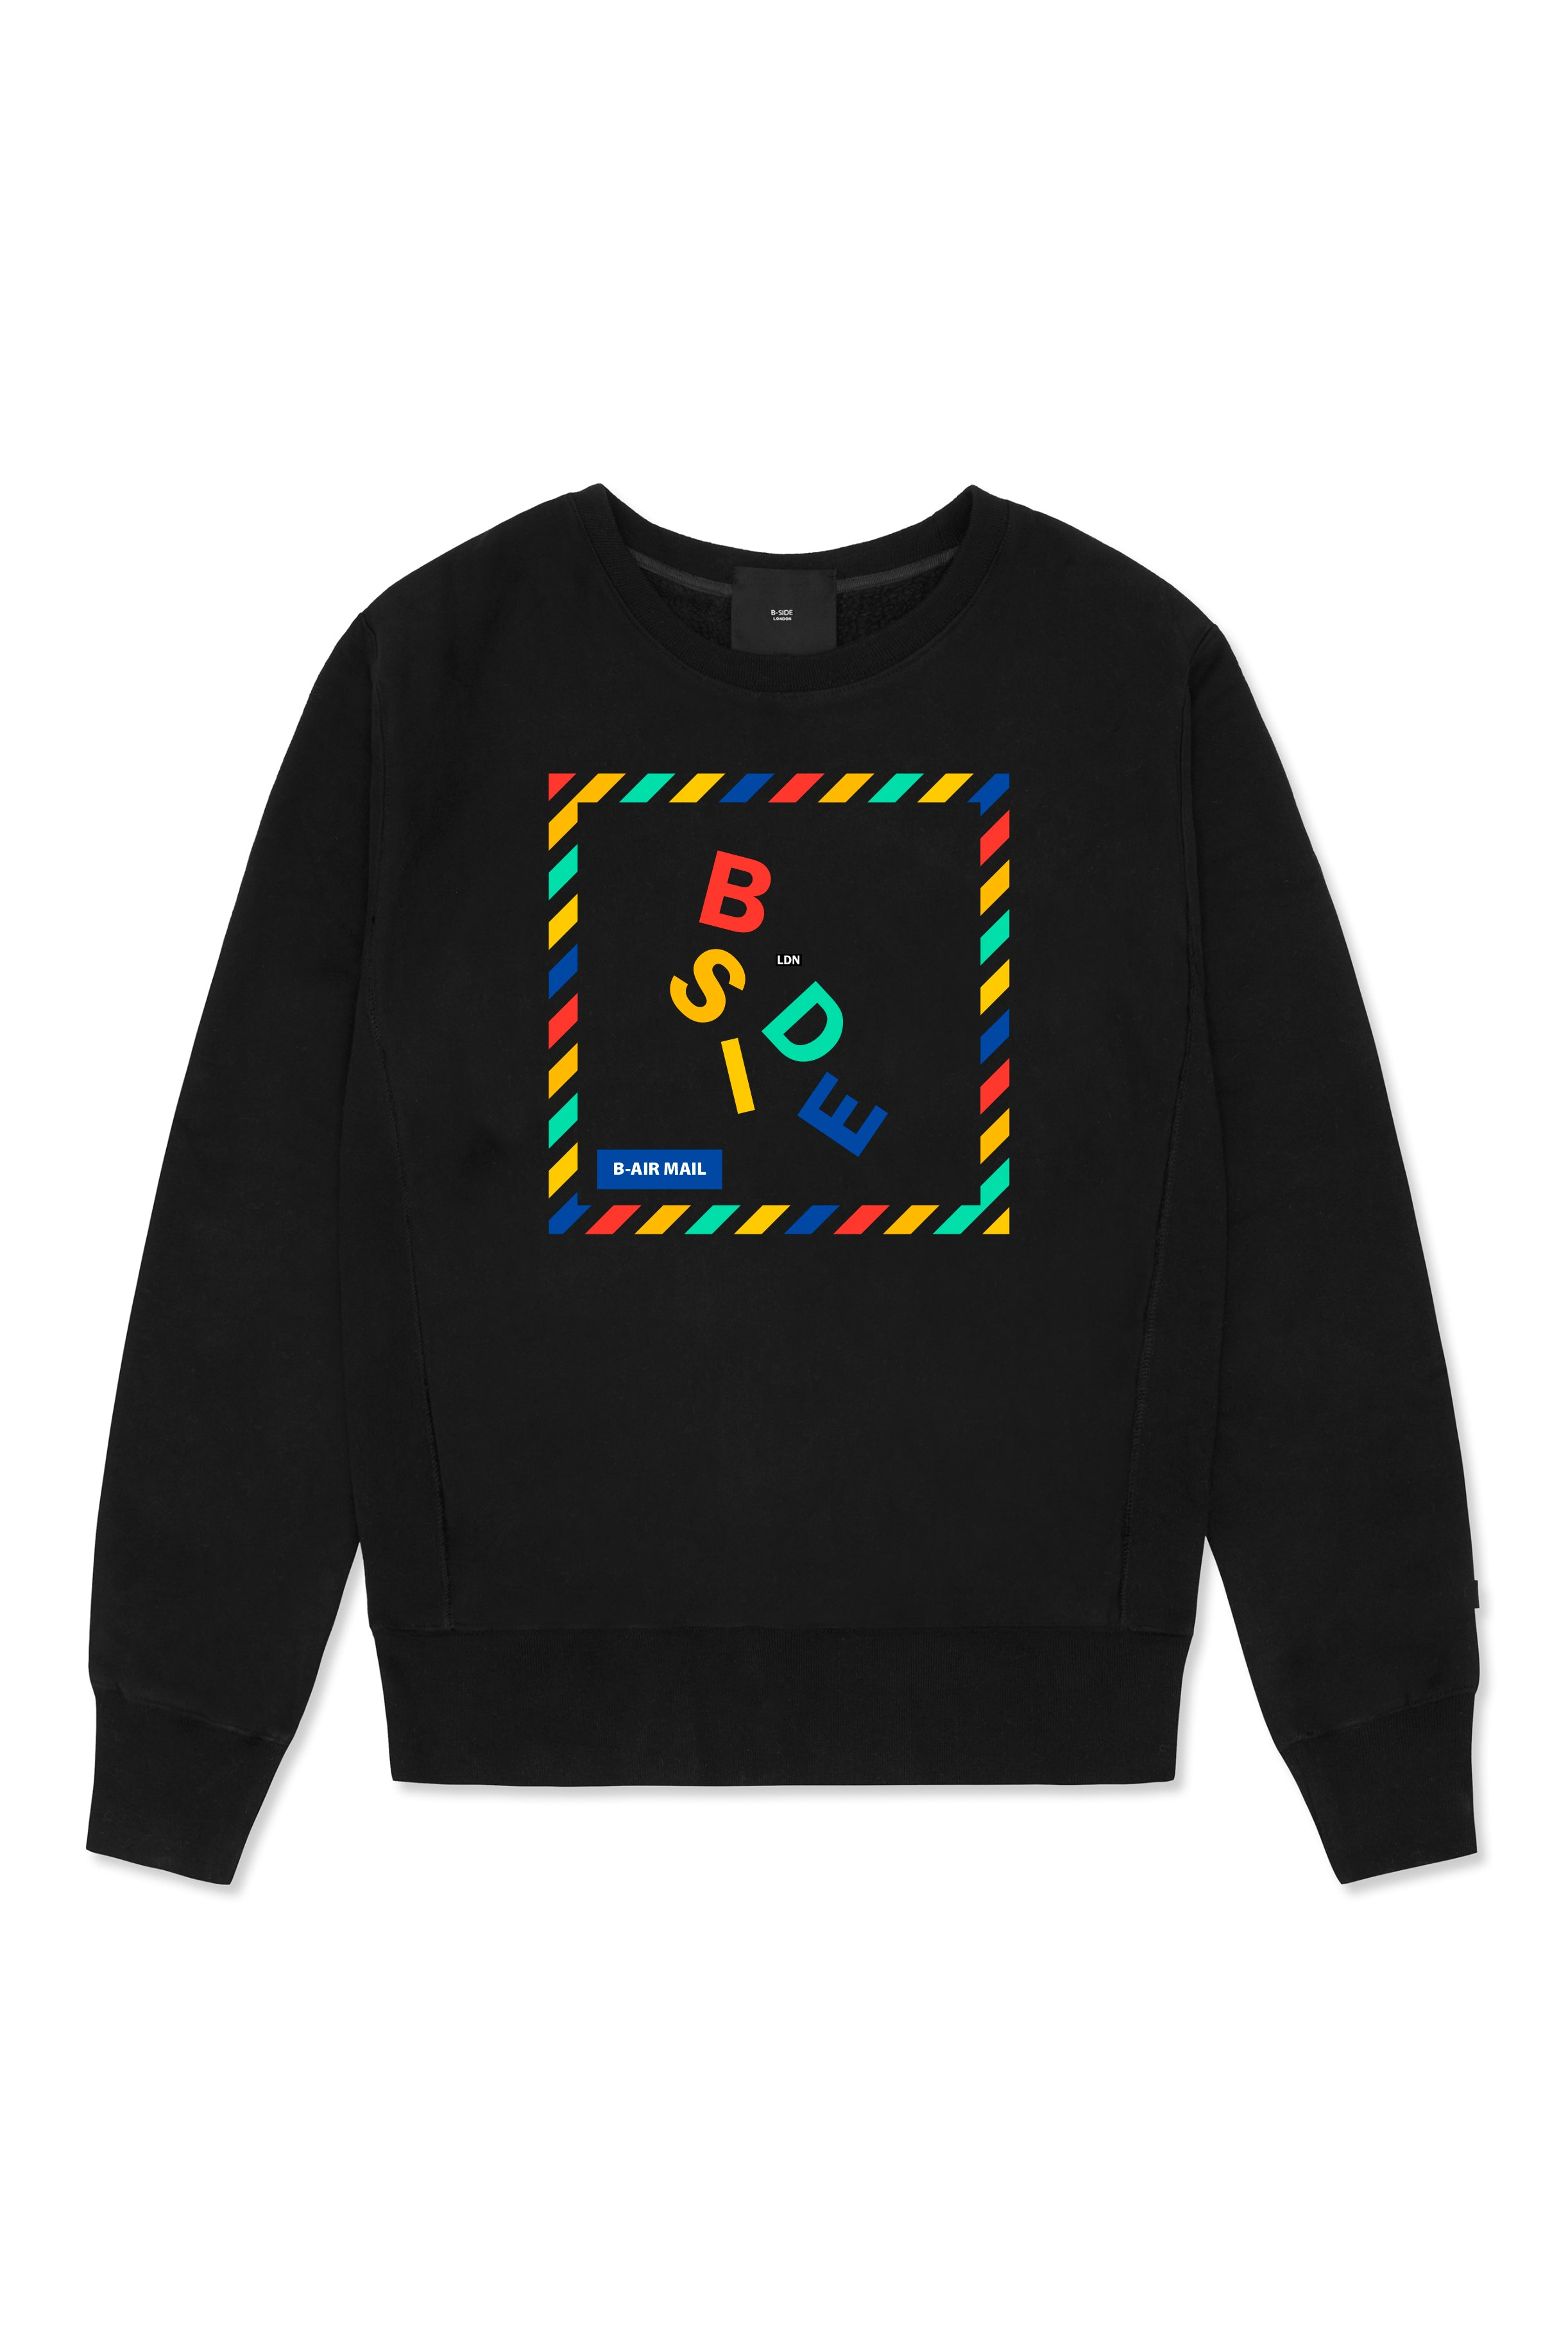 B-MAIL CREWNECK SWEAT | B-sidebywale